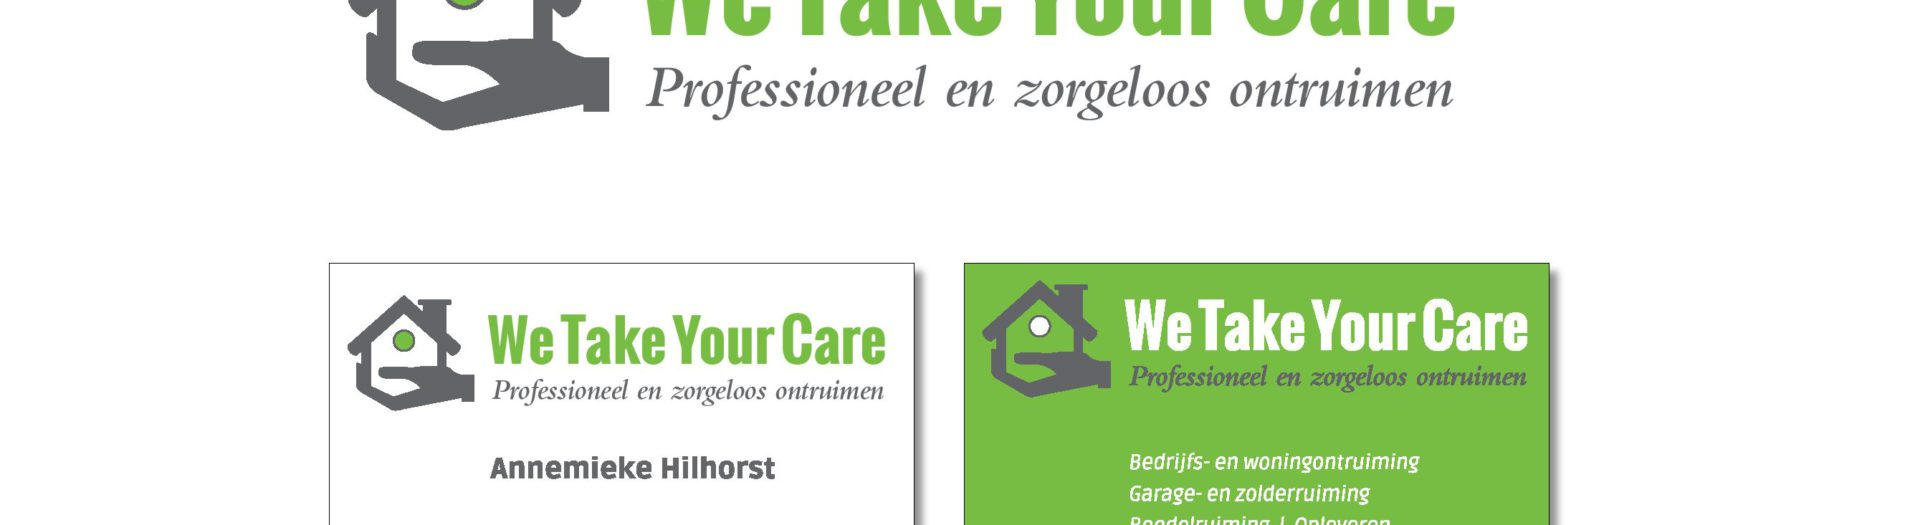 Ontwerp logo en visitekaartje We Take Your Care